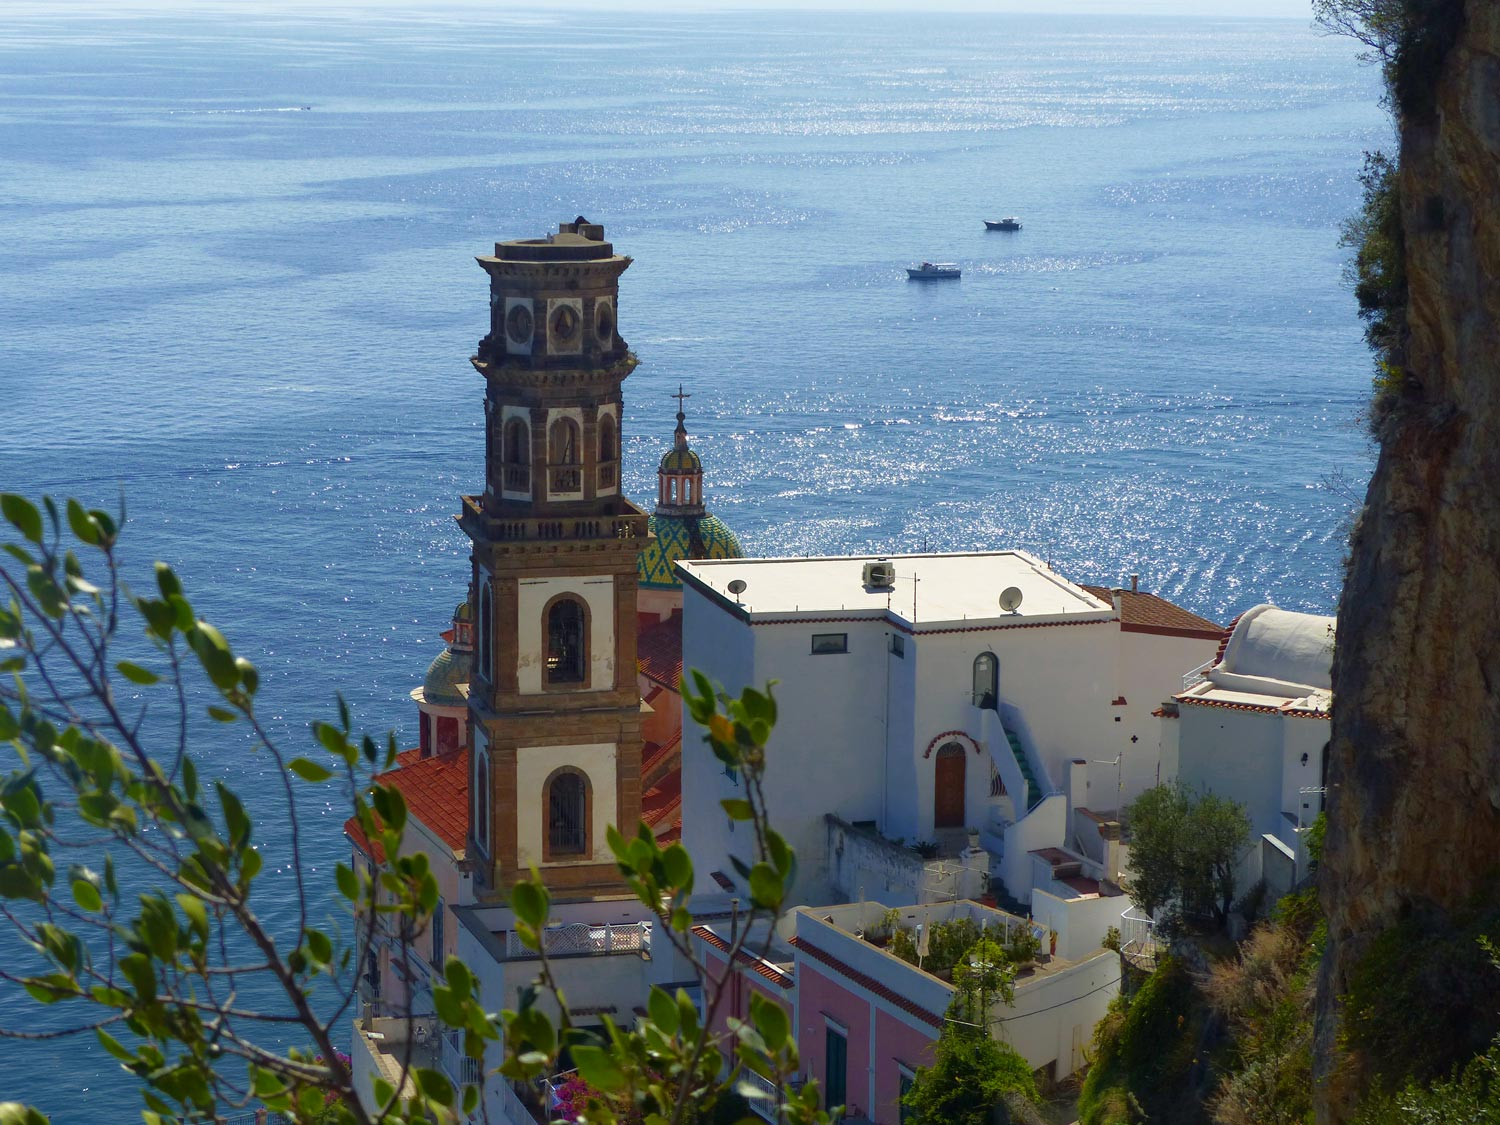 View from above at Amalfi Coast